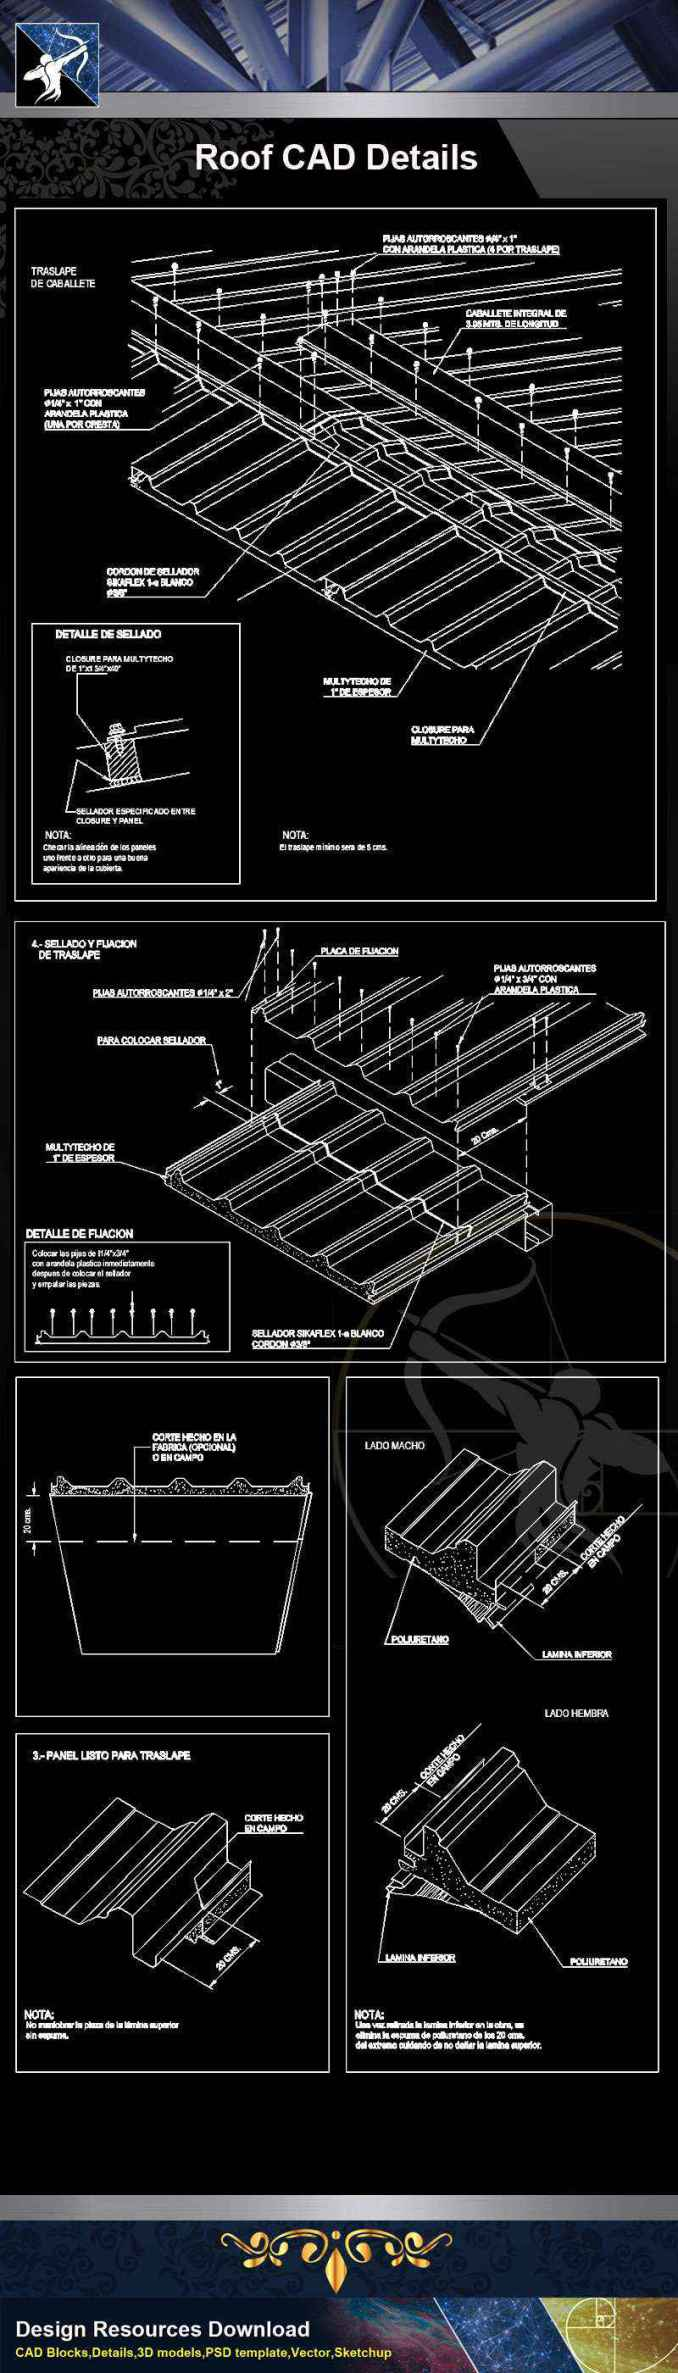 【Architecture CAD Details Collections】Roof CAD Details V.1